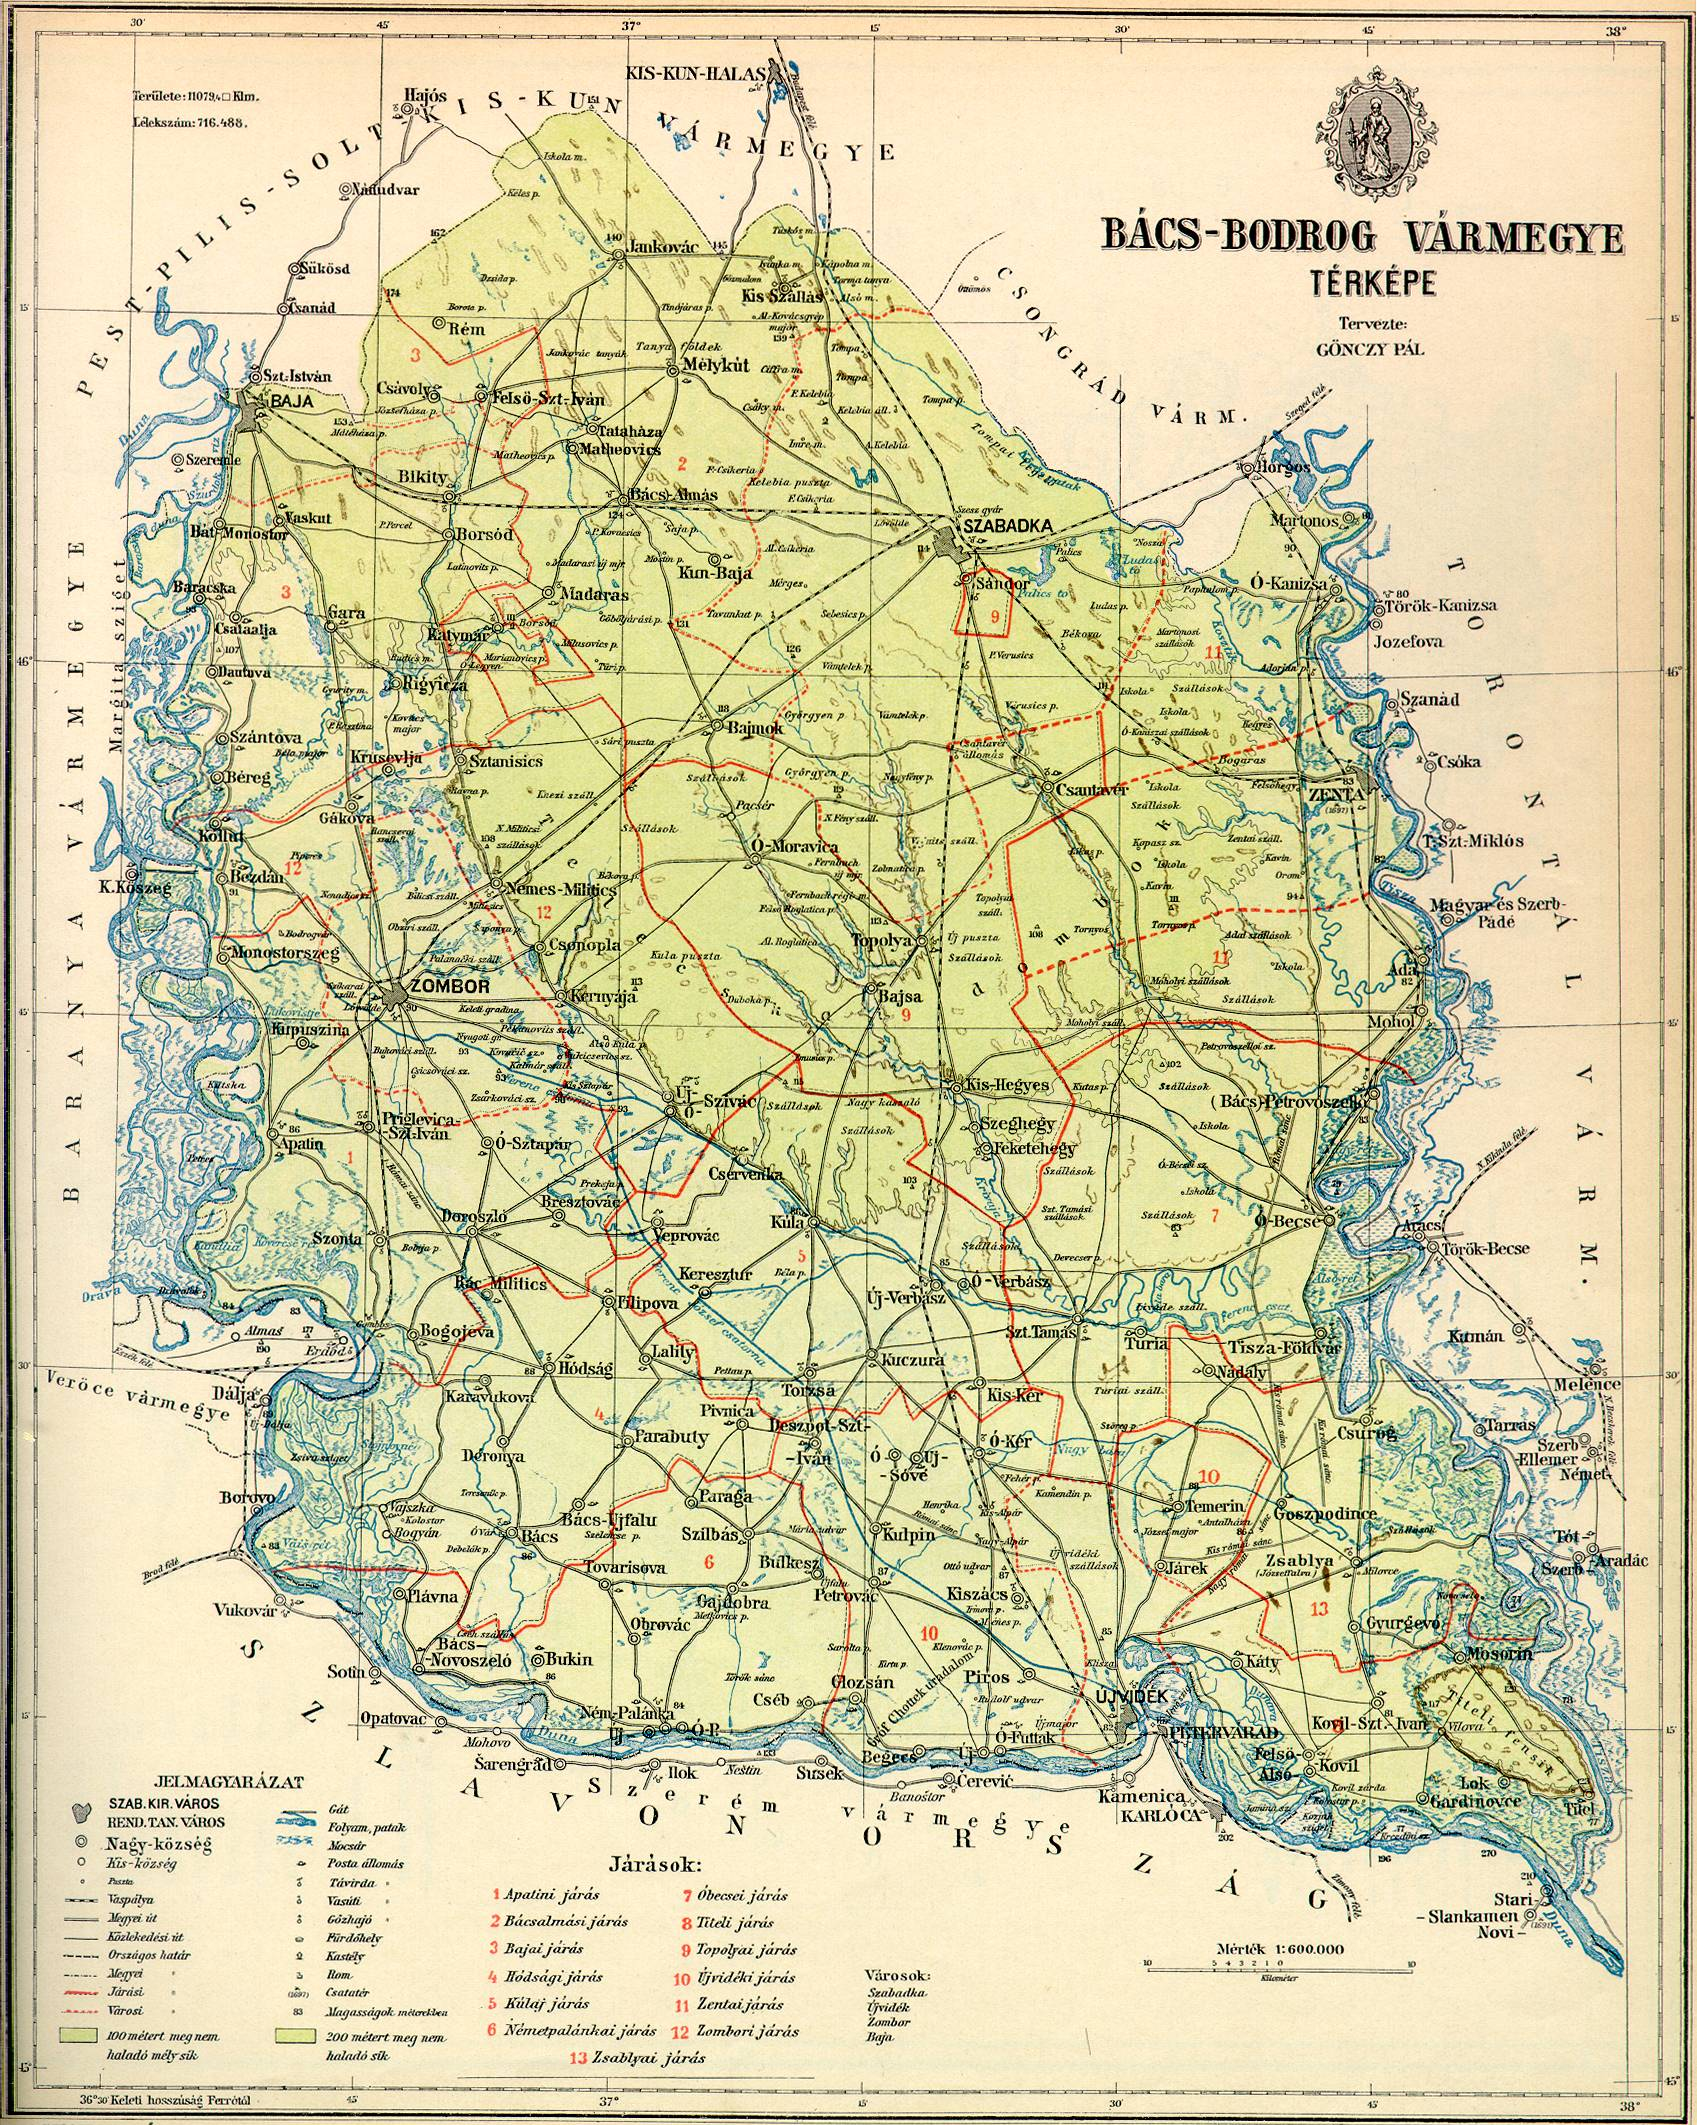 Bacs-Bodrog_county_map.jpg